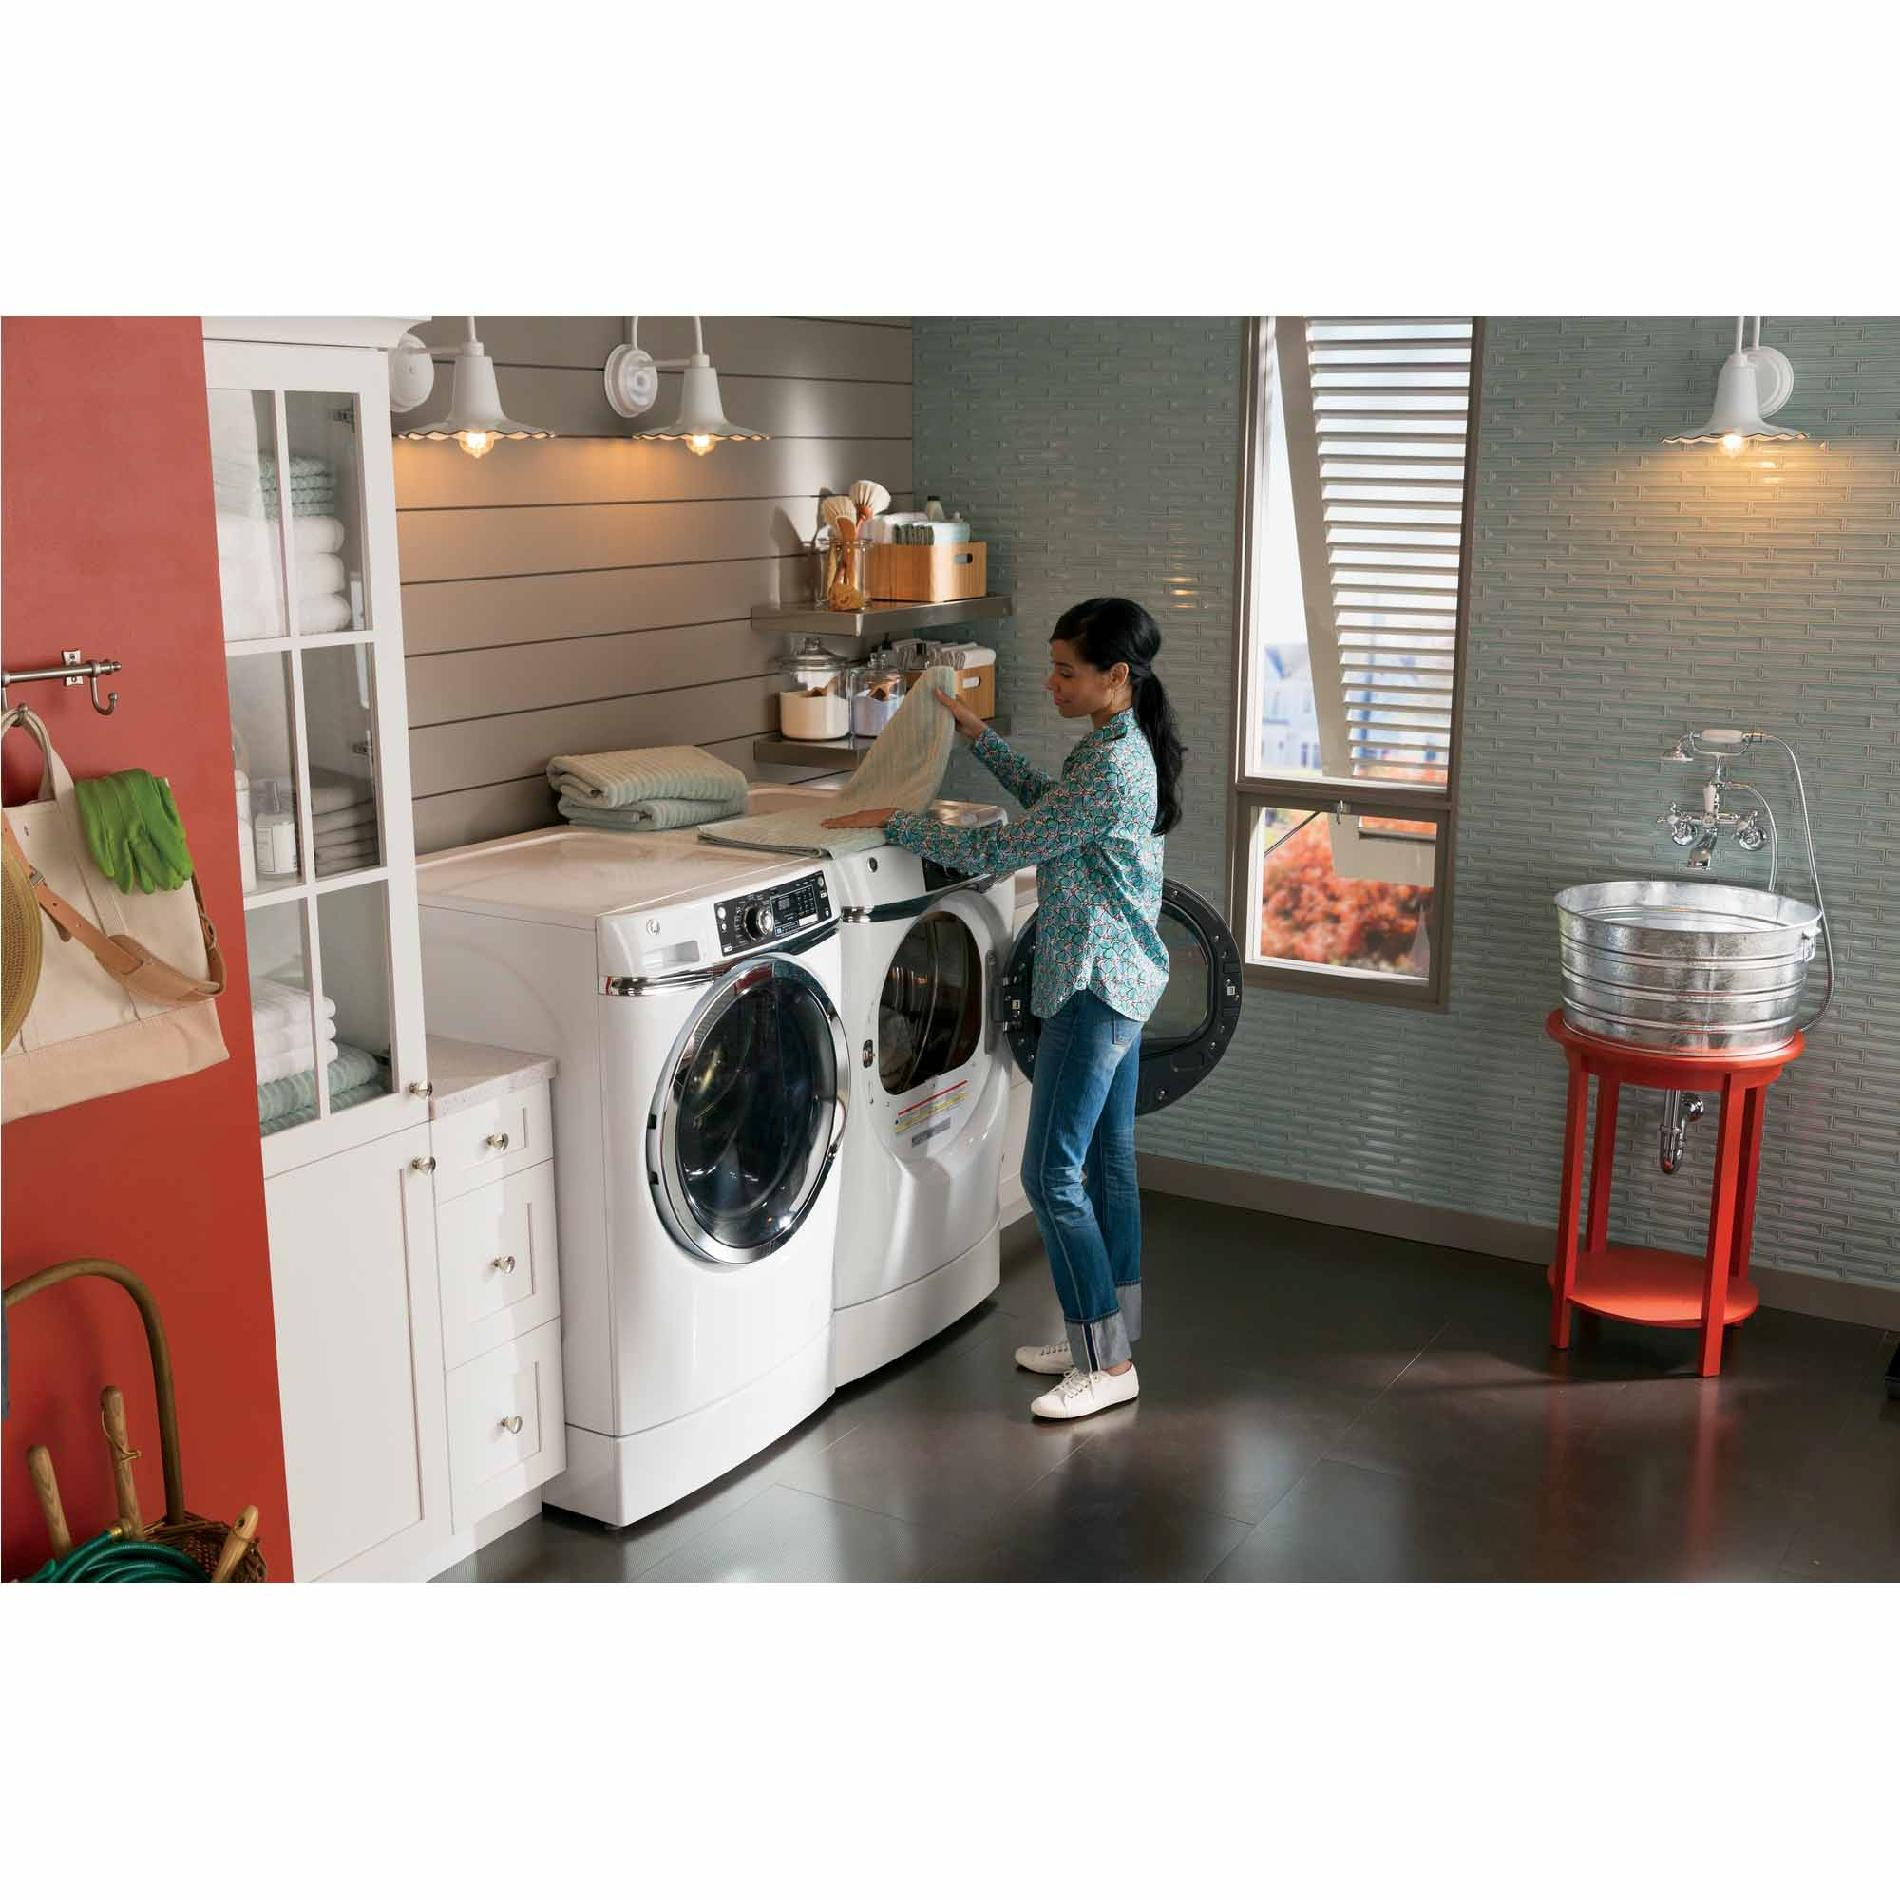 GE Appliances GFWR2700HWW 4.5 cu. ft. RightHeight™ Design Front-Load Washer - White